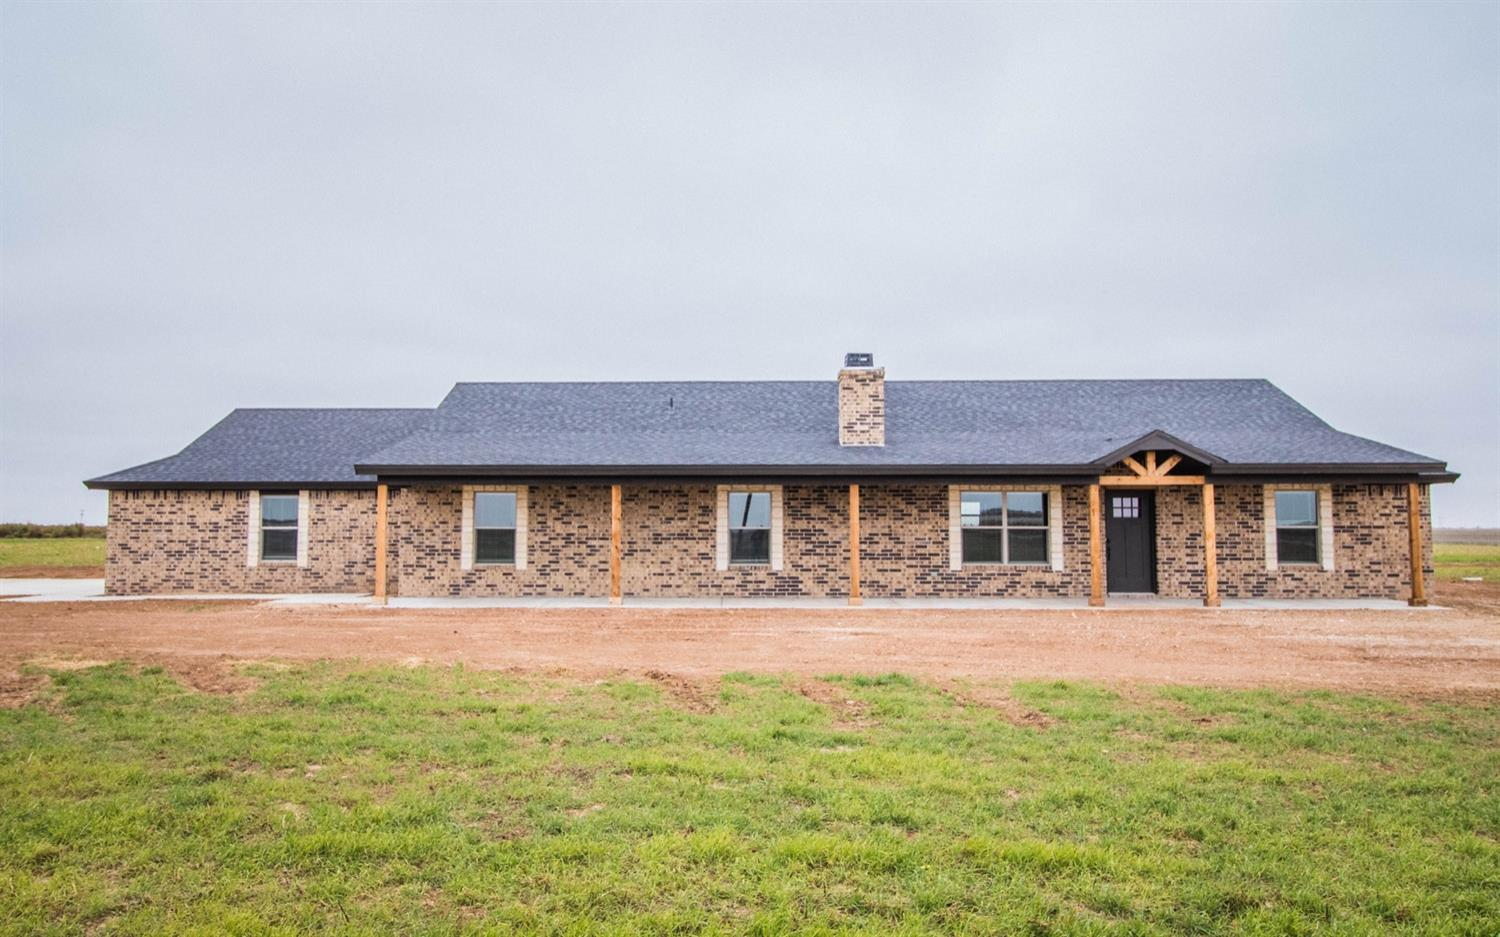 This gorgeous new construction home on 10 acres has it all! The open concept living room and kitchen are complete with a bricked fireplace and vaulted ceilings. Escape to the isolated master that features a large wrap around closet, oversized walk in shower, and double vanities. The large laundry room includes extra storage space and room for a fridge. Relax and enjoy the wide open spaces on the oversized covered back patio.